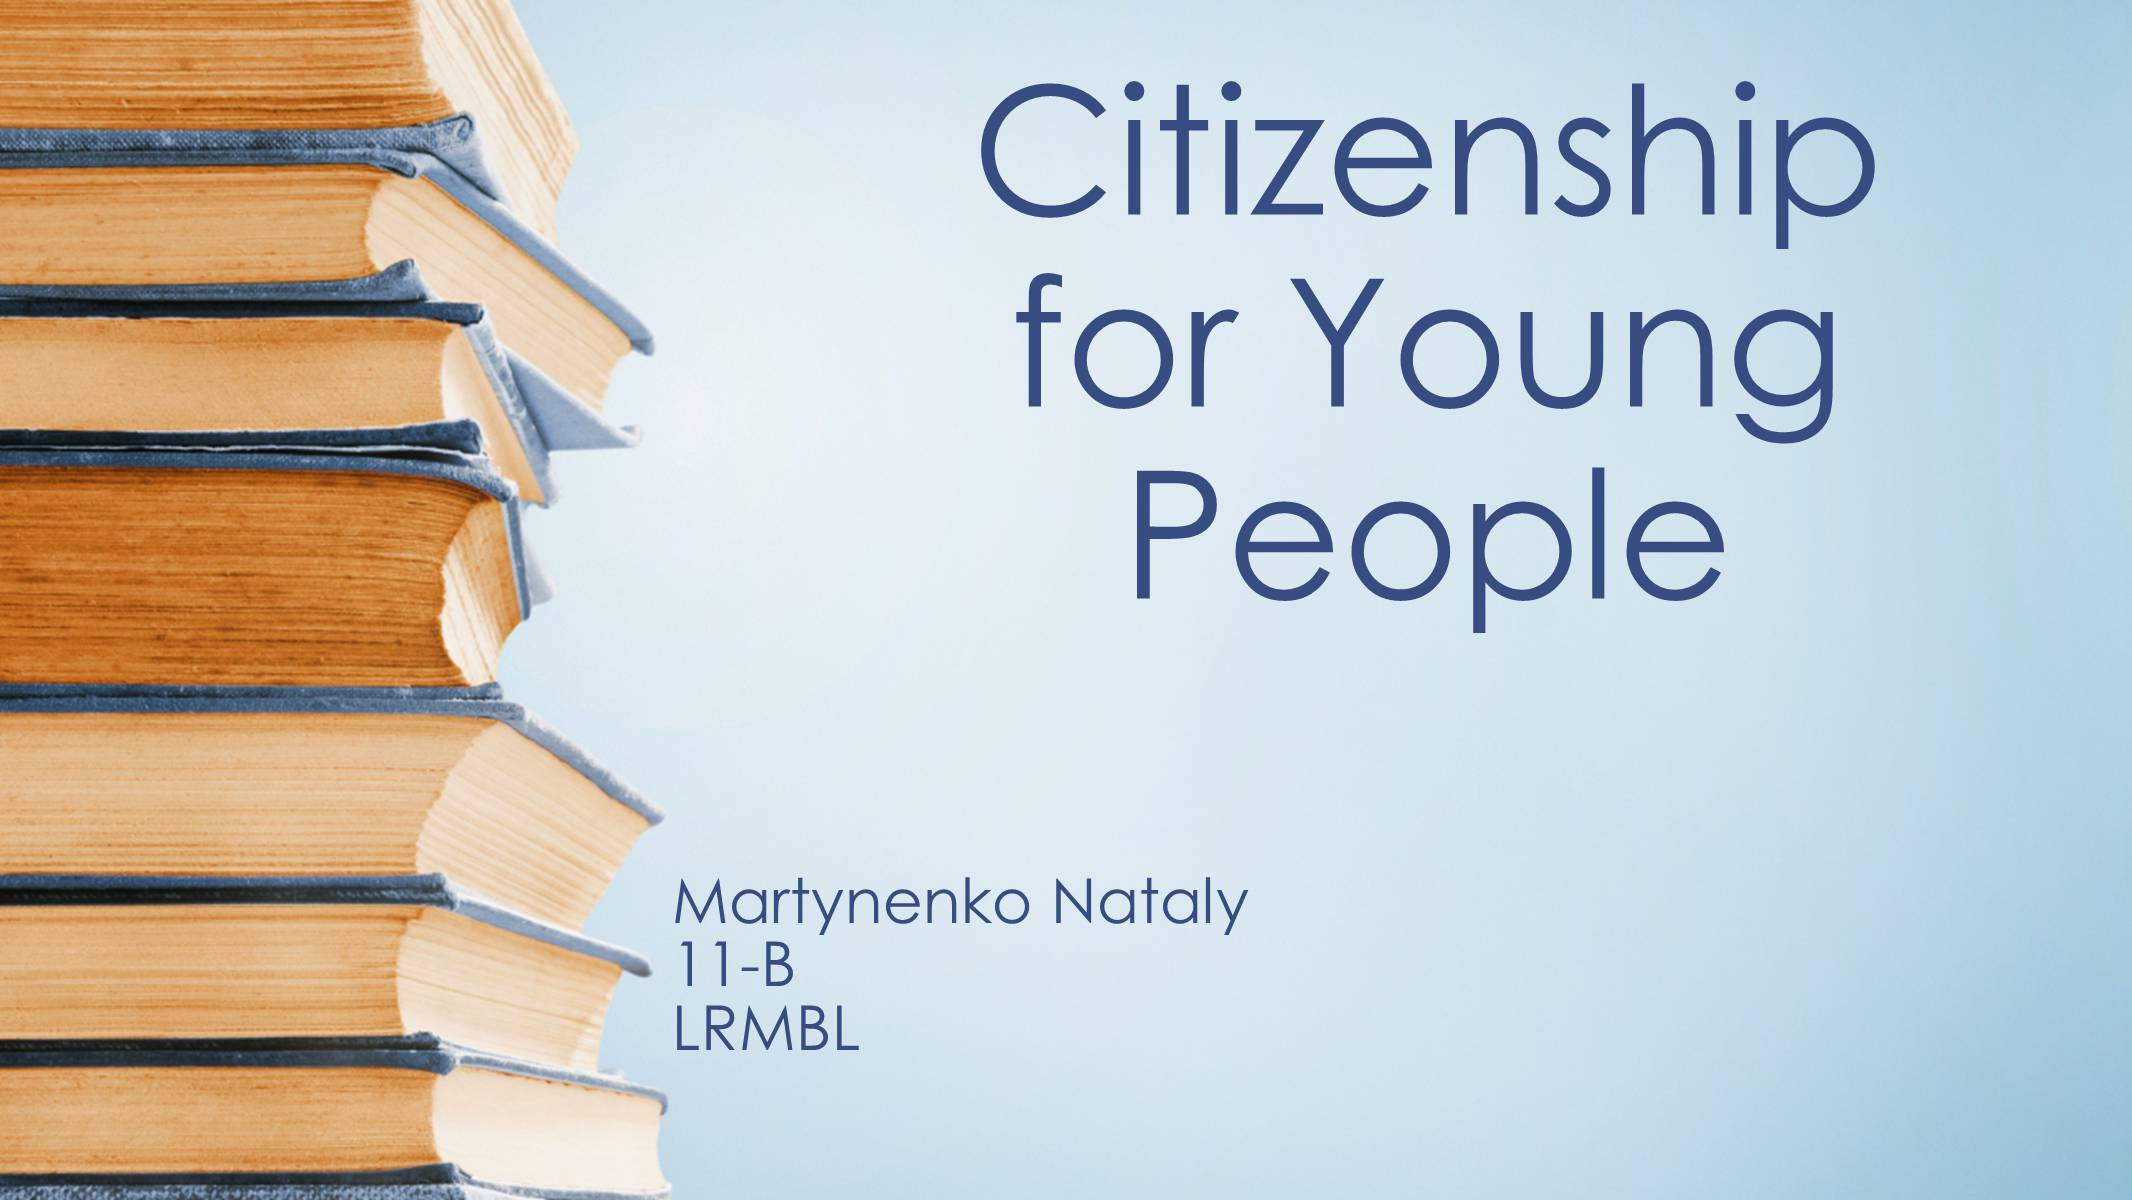 Презентація на тему «Citizenship for Young People»